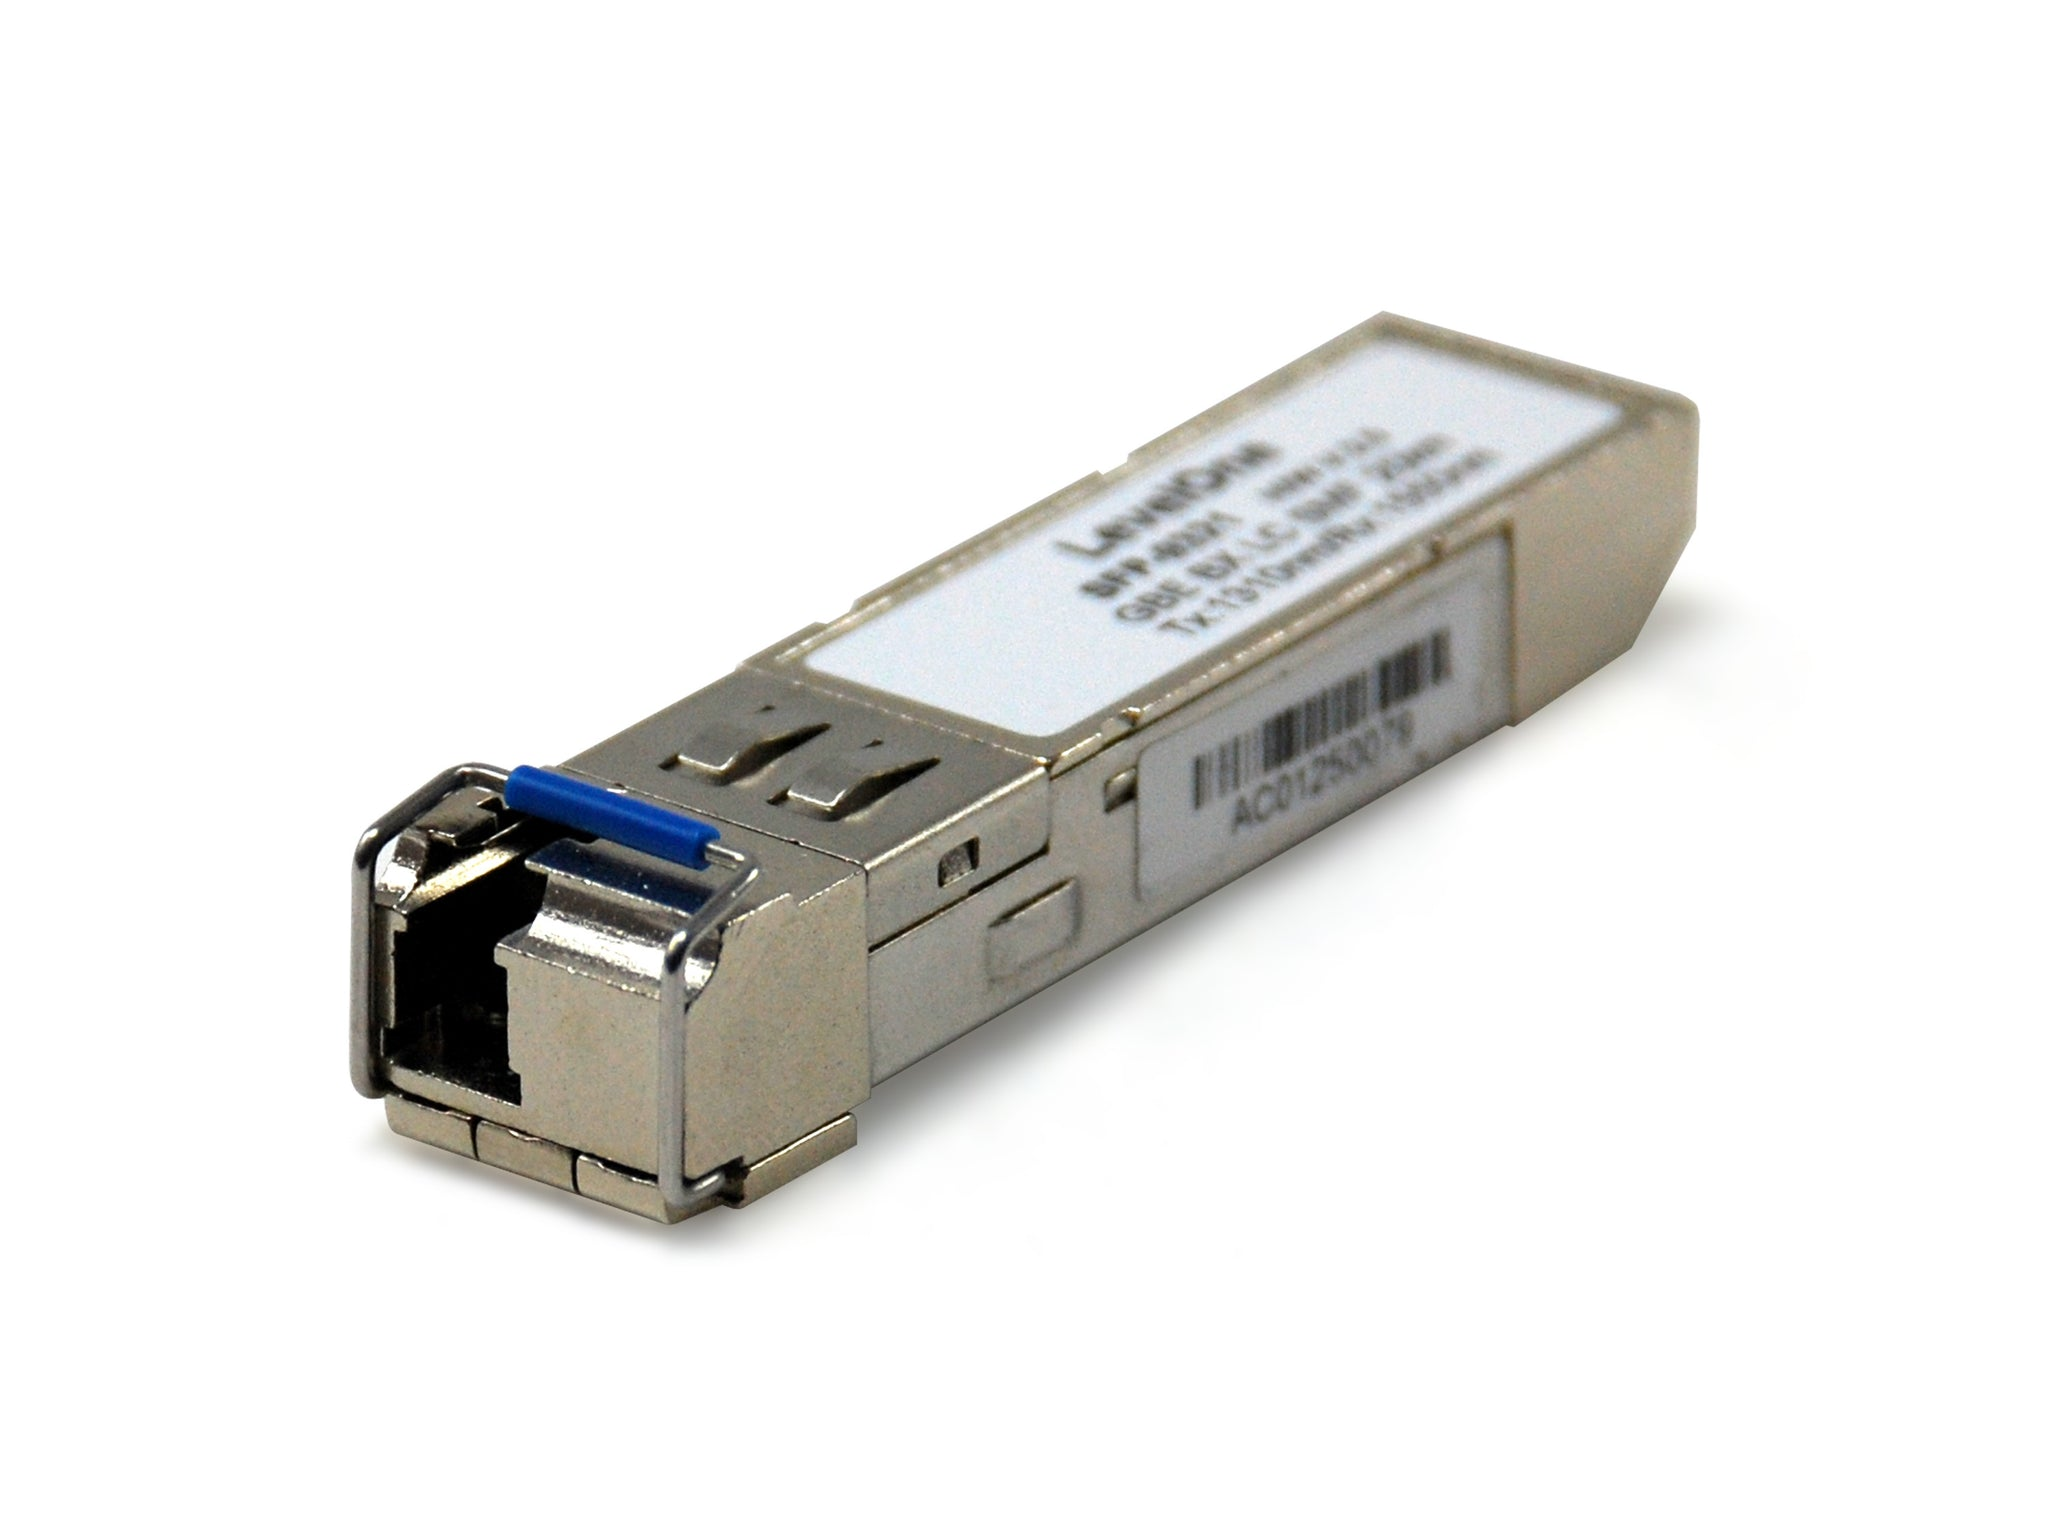 SFP-9221 1.25Gbps Single-mode BIDI SFP Transceiver, 10km, TX 1310nm / RX 1550nm